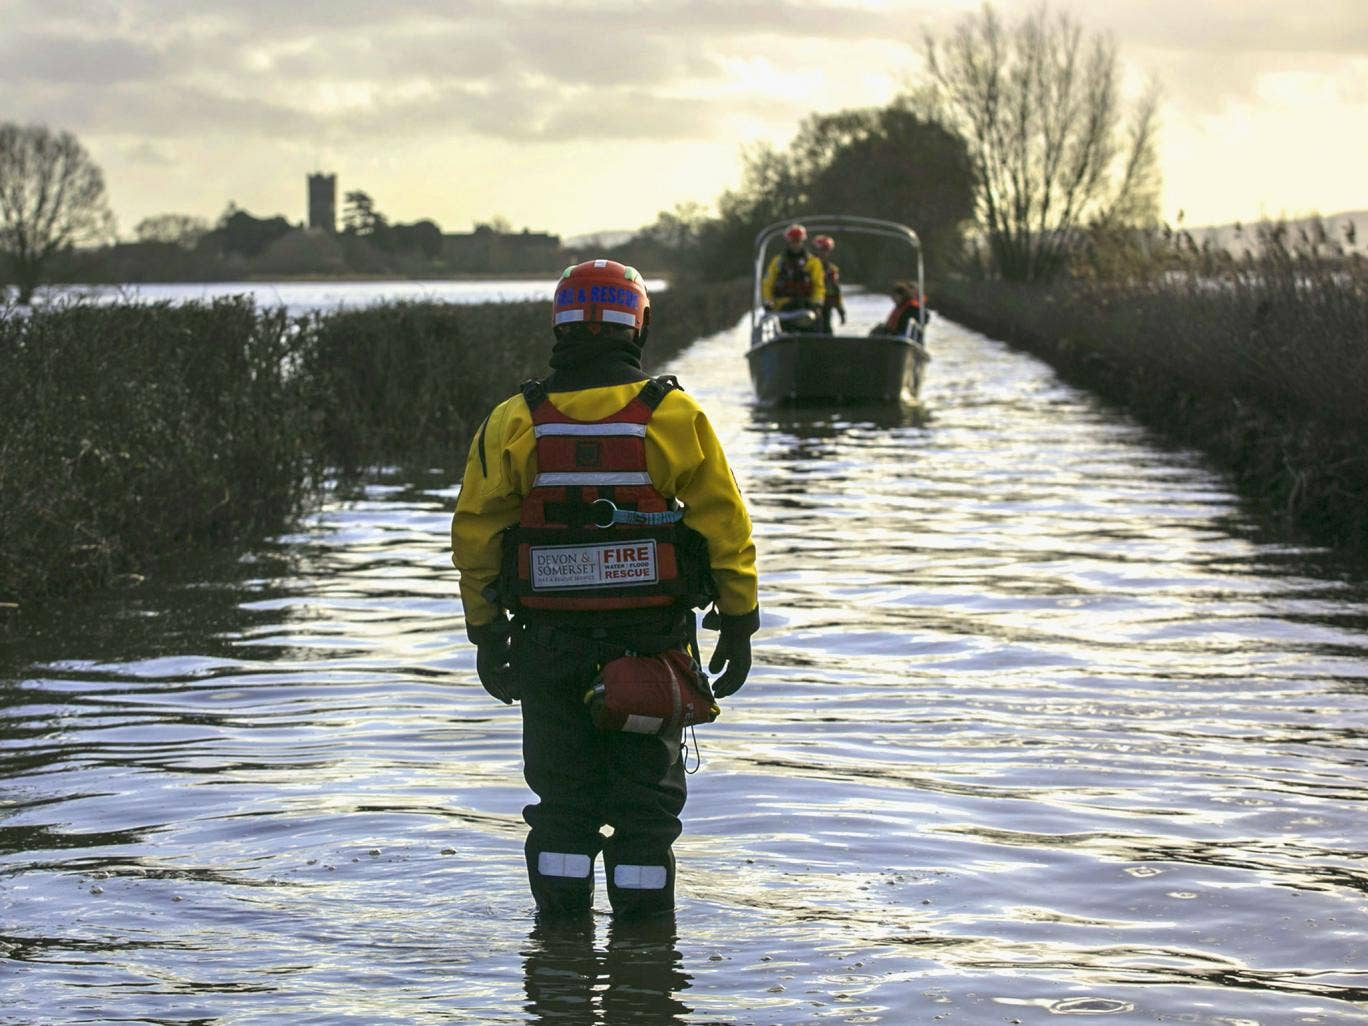 The humanitarian support boat operated by a crew from Devon and Somerset Fire and Rescue Service arrives from Muchelney, a village near Langport in Somerset still cut off by flood water